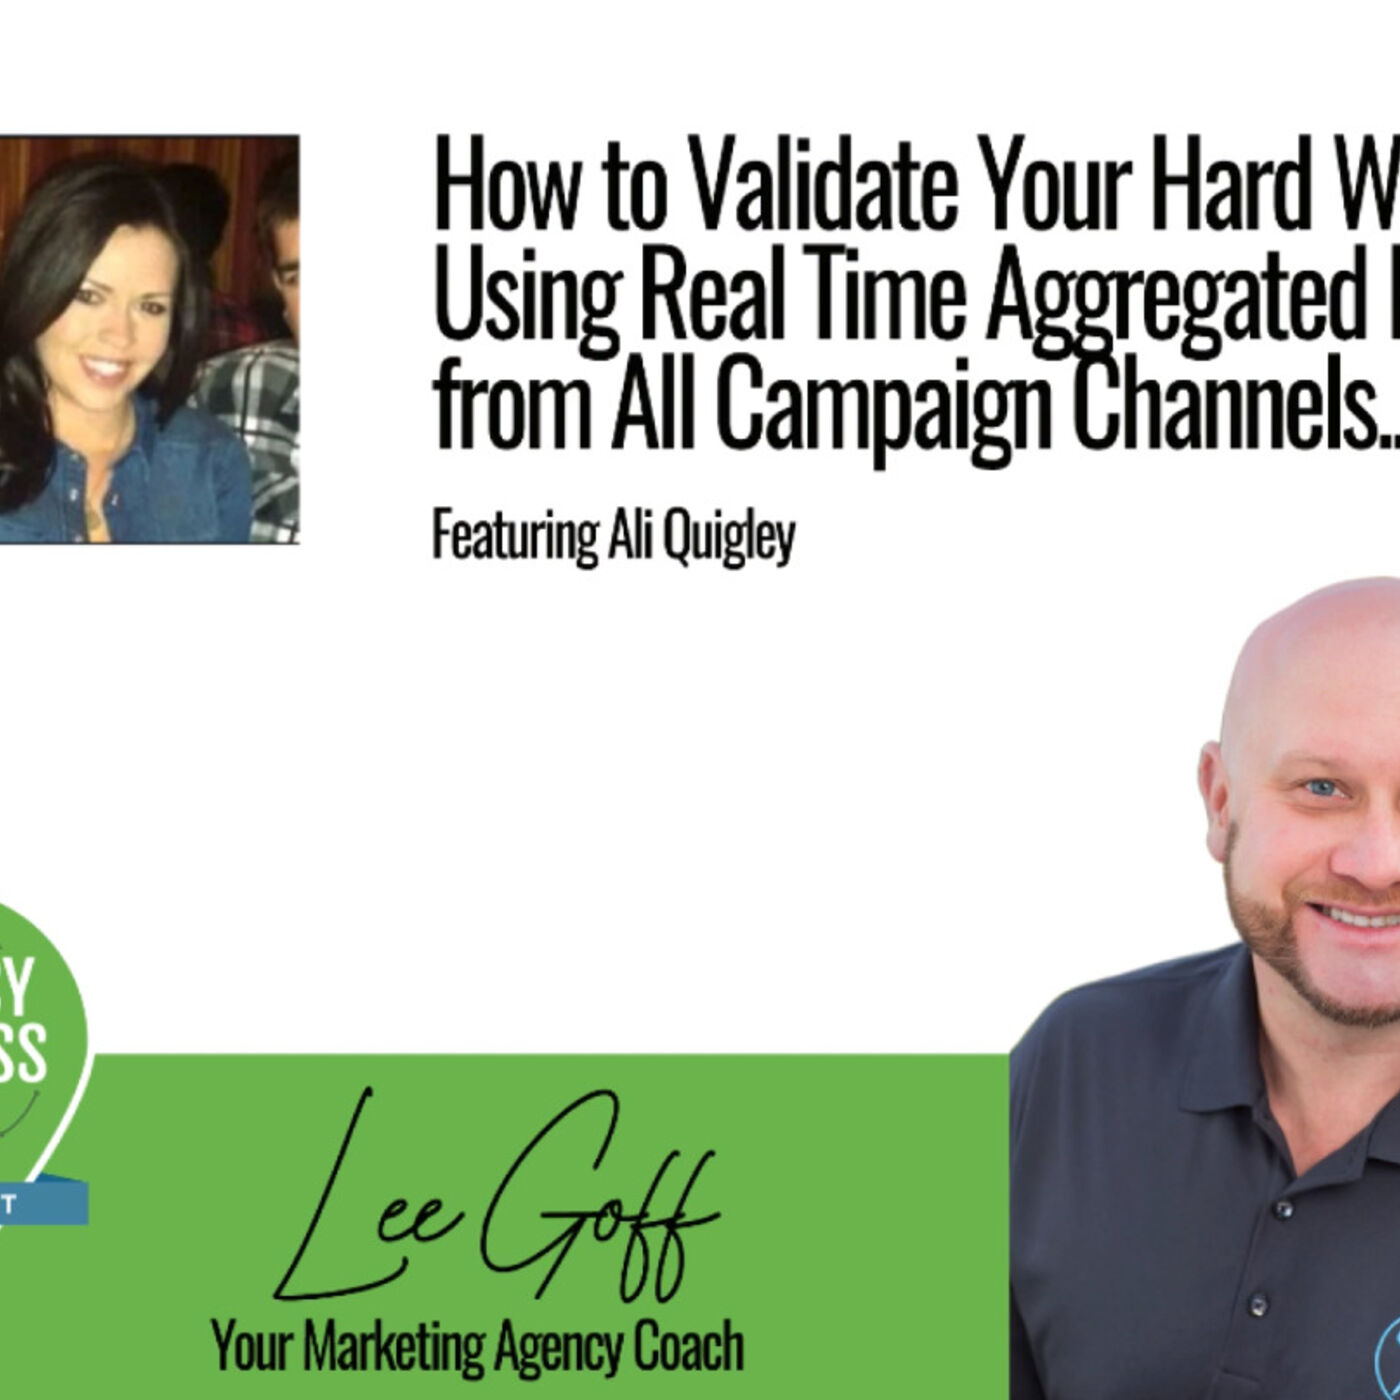 Ali Quigley – Impravado – Increase Residual Income For Your Agency Using Real Time KPI Dashboards - Agency Success GPS Podcast - Lee Goff - Episode 10